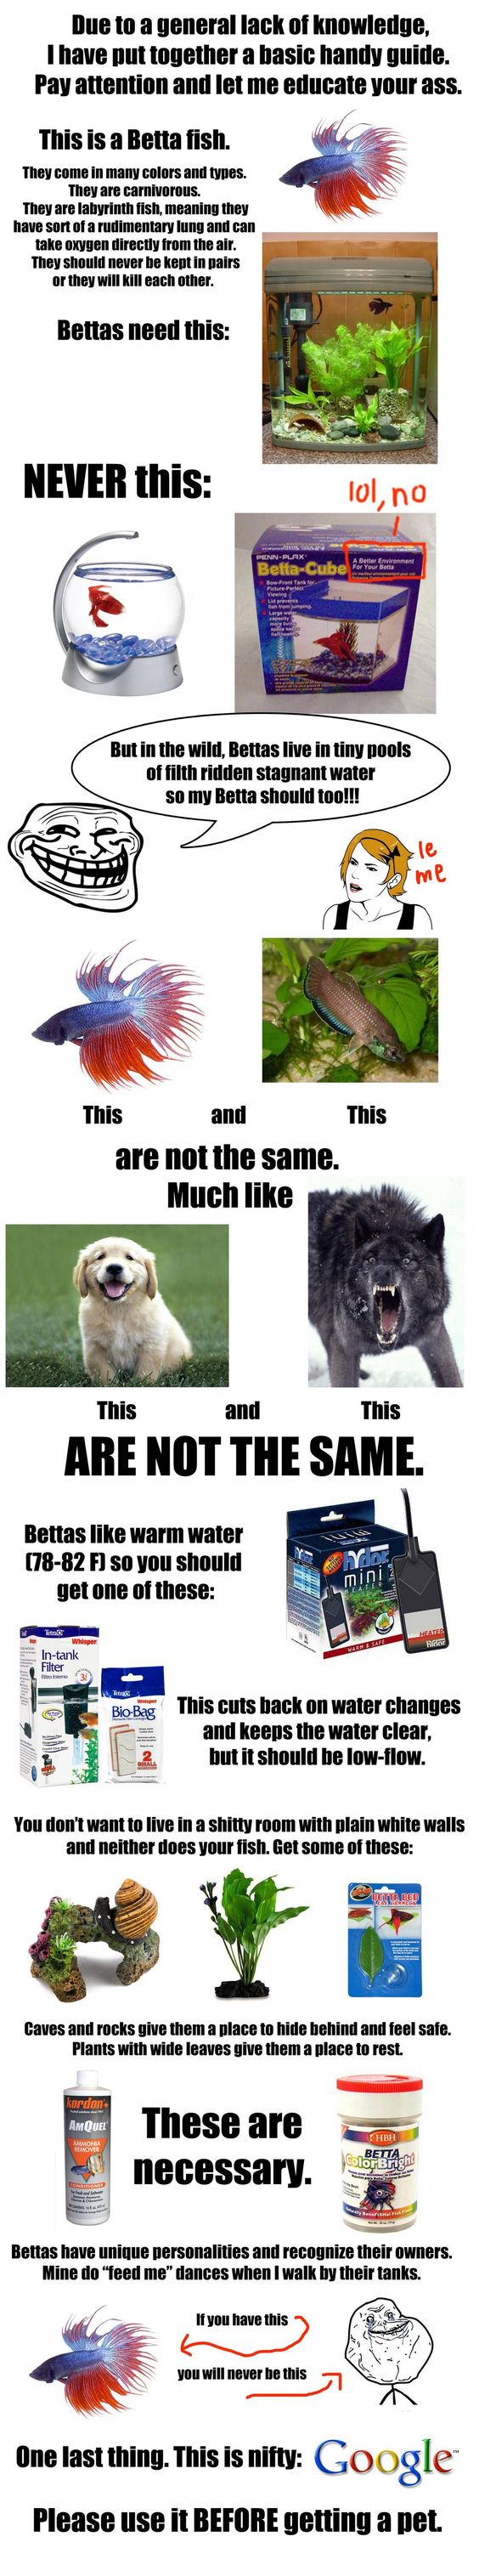 Reddit: due to an overwhelming lack of knowledge that makes me rage, I have put together a handy guide. - Imgur